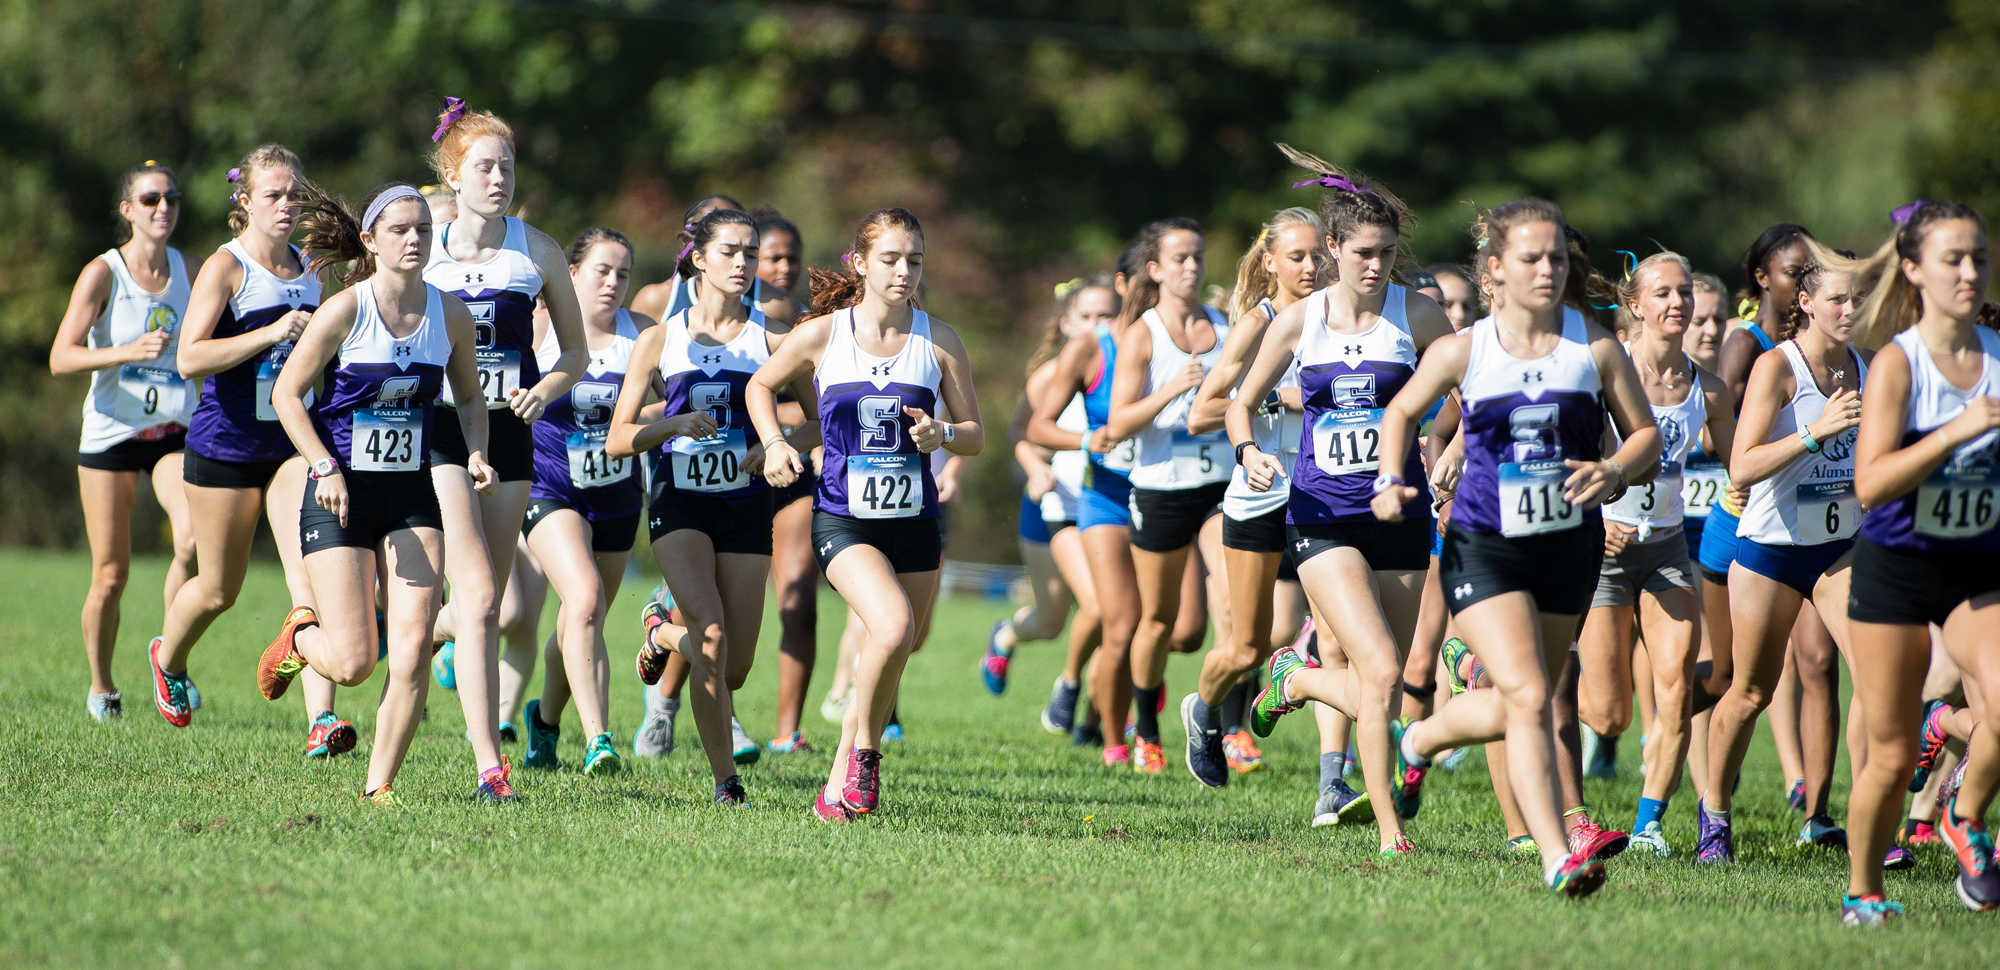 Women's Cross Country Sets Sights On Climbing Landmark Conference Ladder